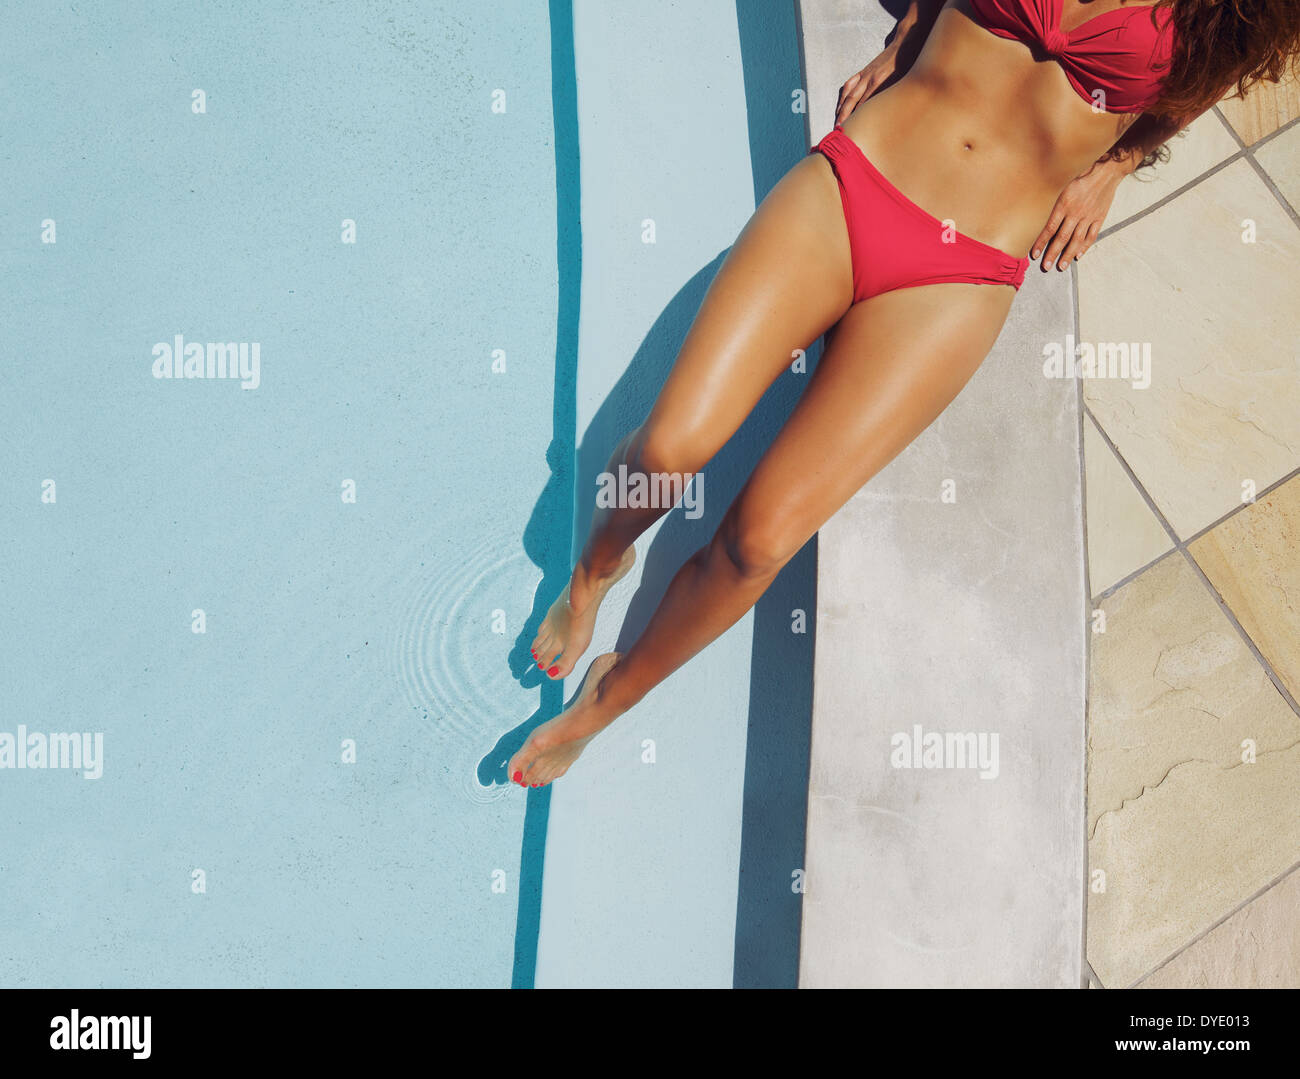 Overhead view of a beautiful female fashion model wearing red bikini resting on the edge of a pool at a luxury resort. Stock Photo